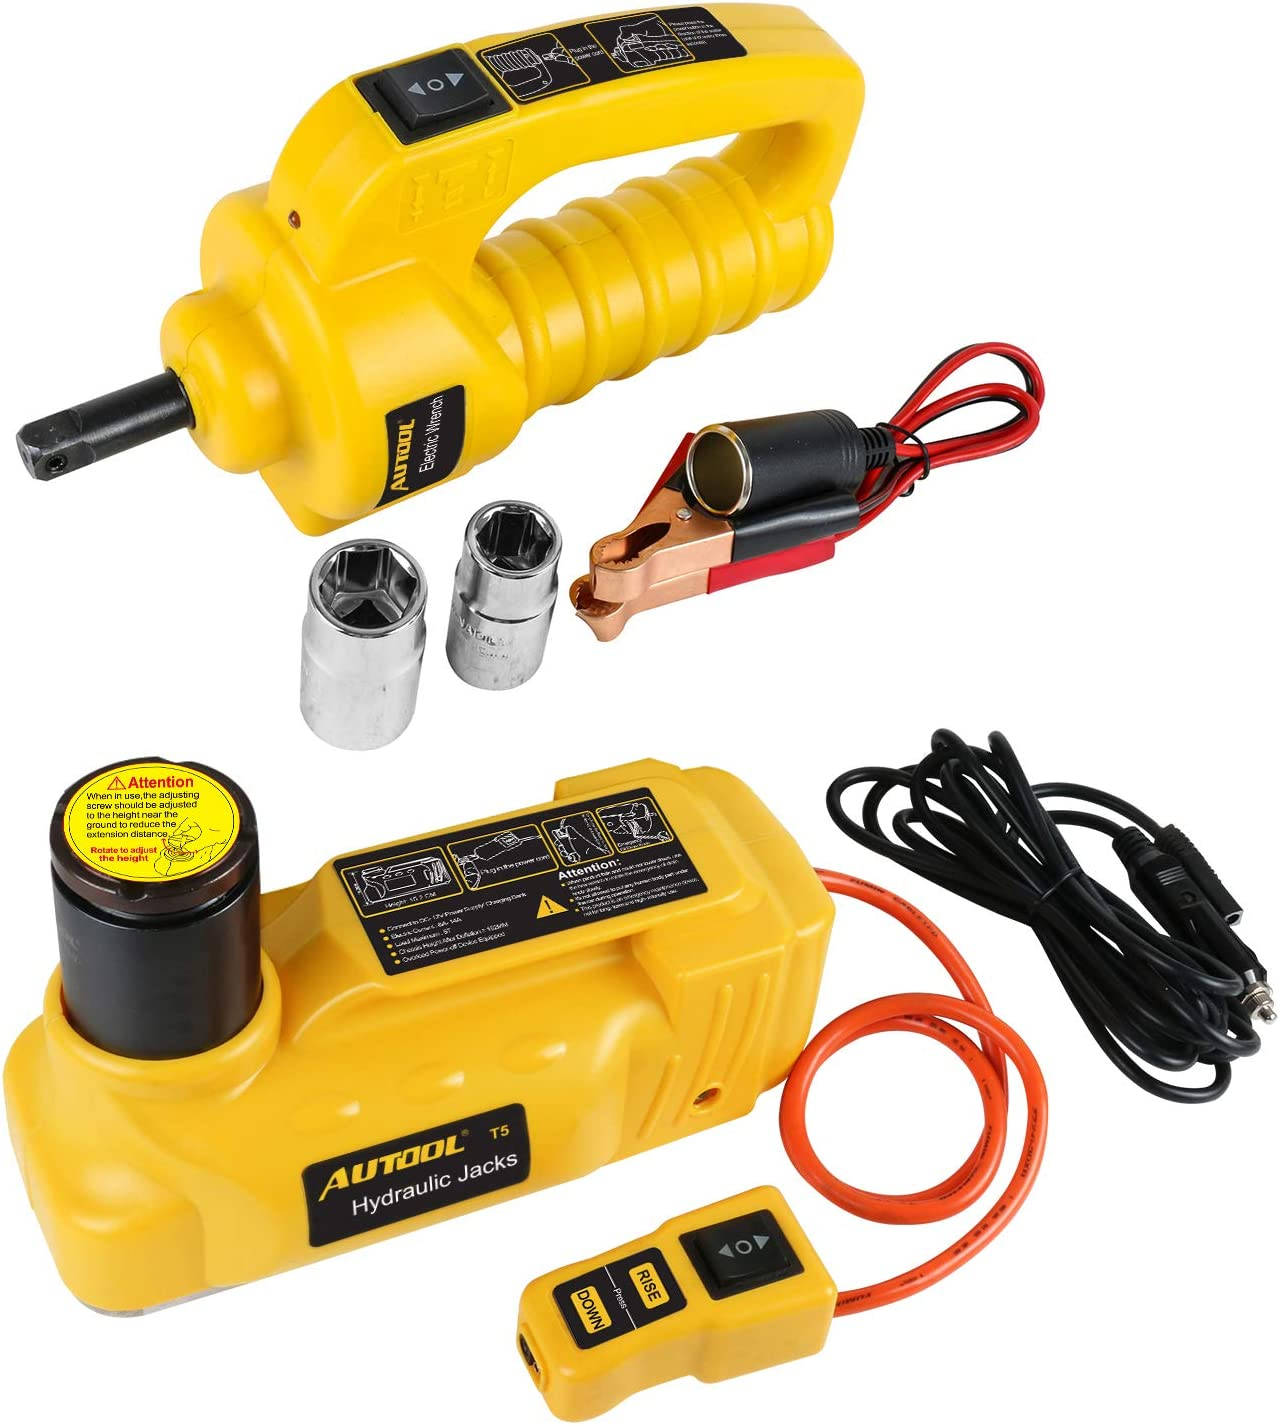 AUTOOL 12V DC 6T universal electric jack set Electric Hydraulic Floor Jack-Tire Lift Kit with Electric Impact Wrench for Car,Sedan,Van,SUV,Trucks